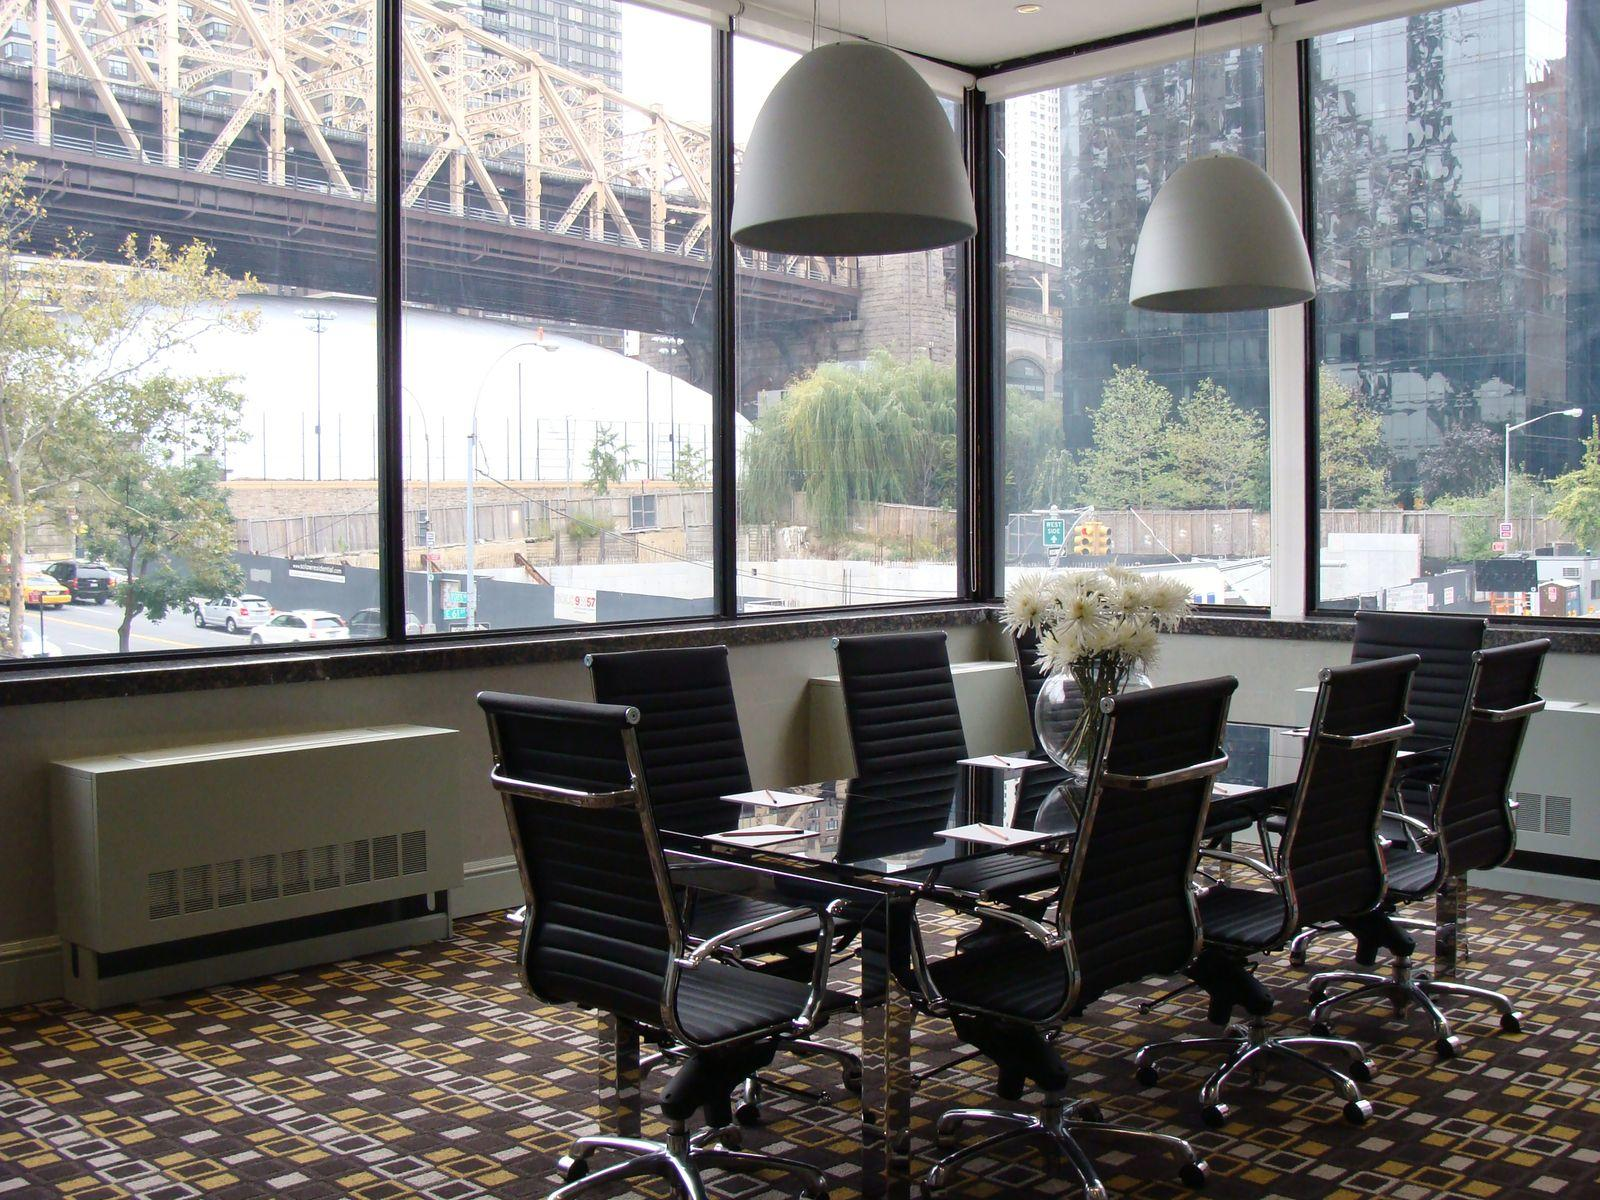 chairs surround a conference table